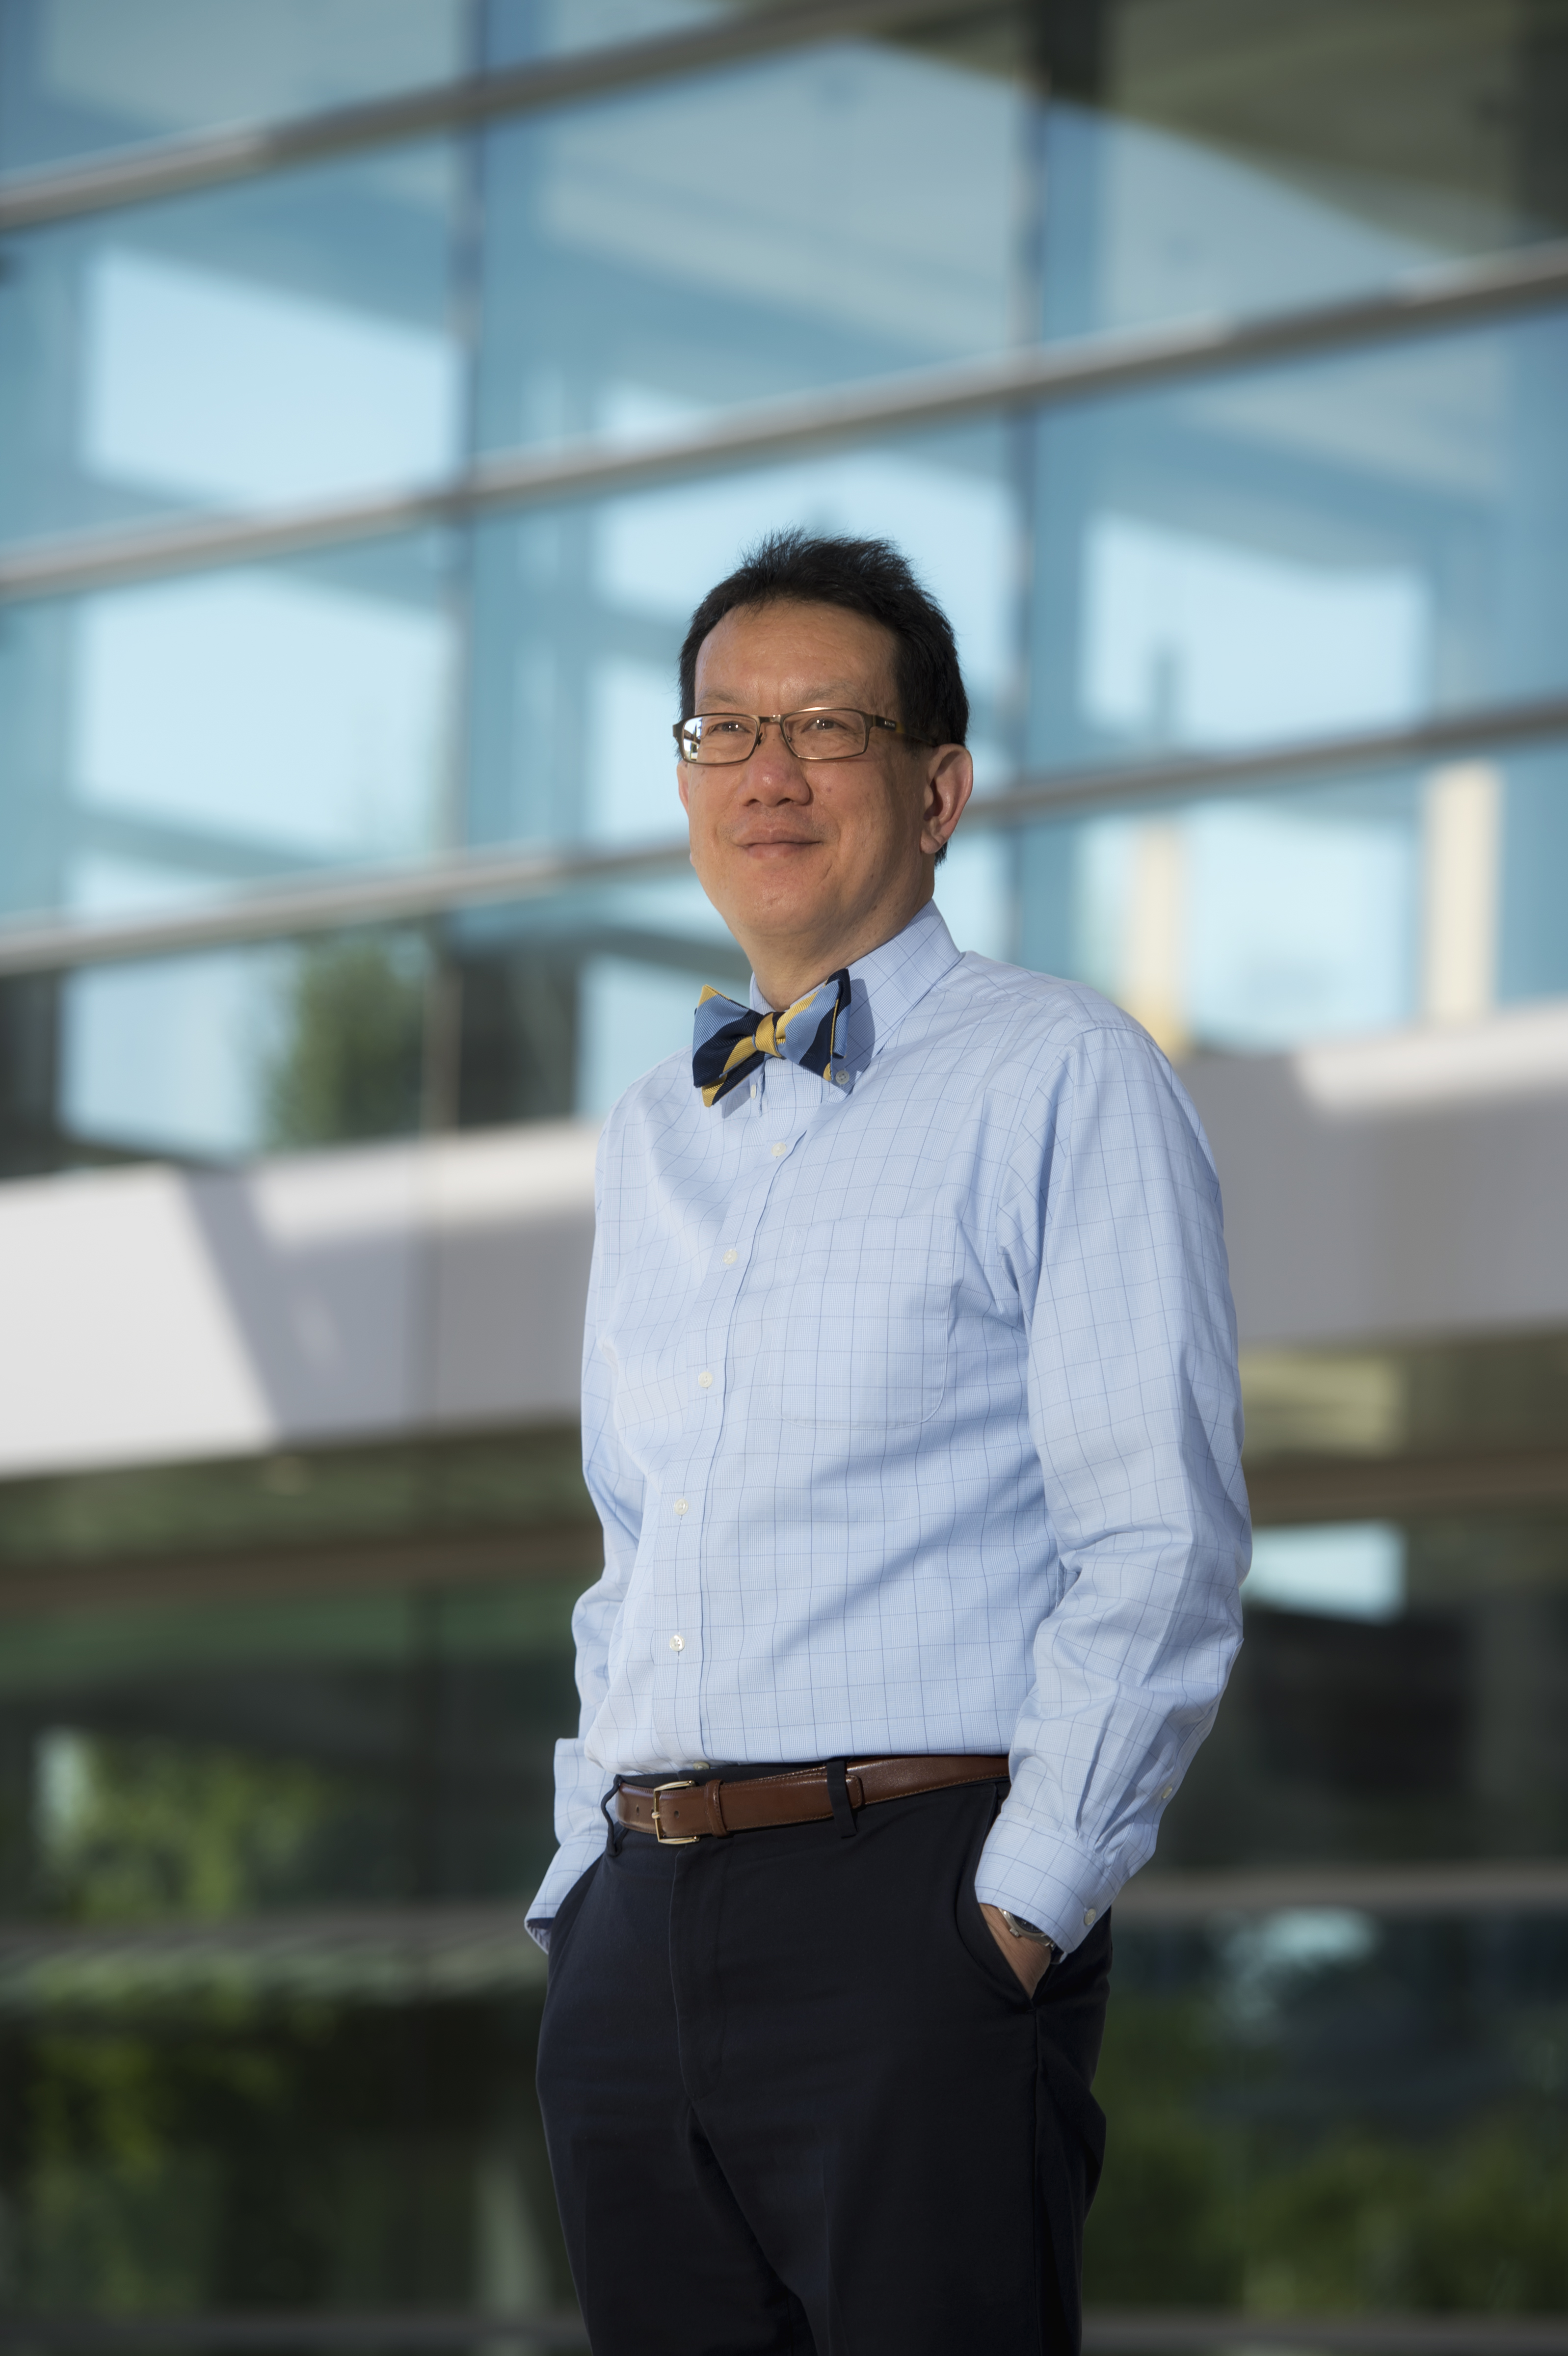 Ted Wun, MD